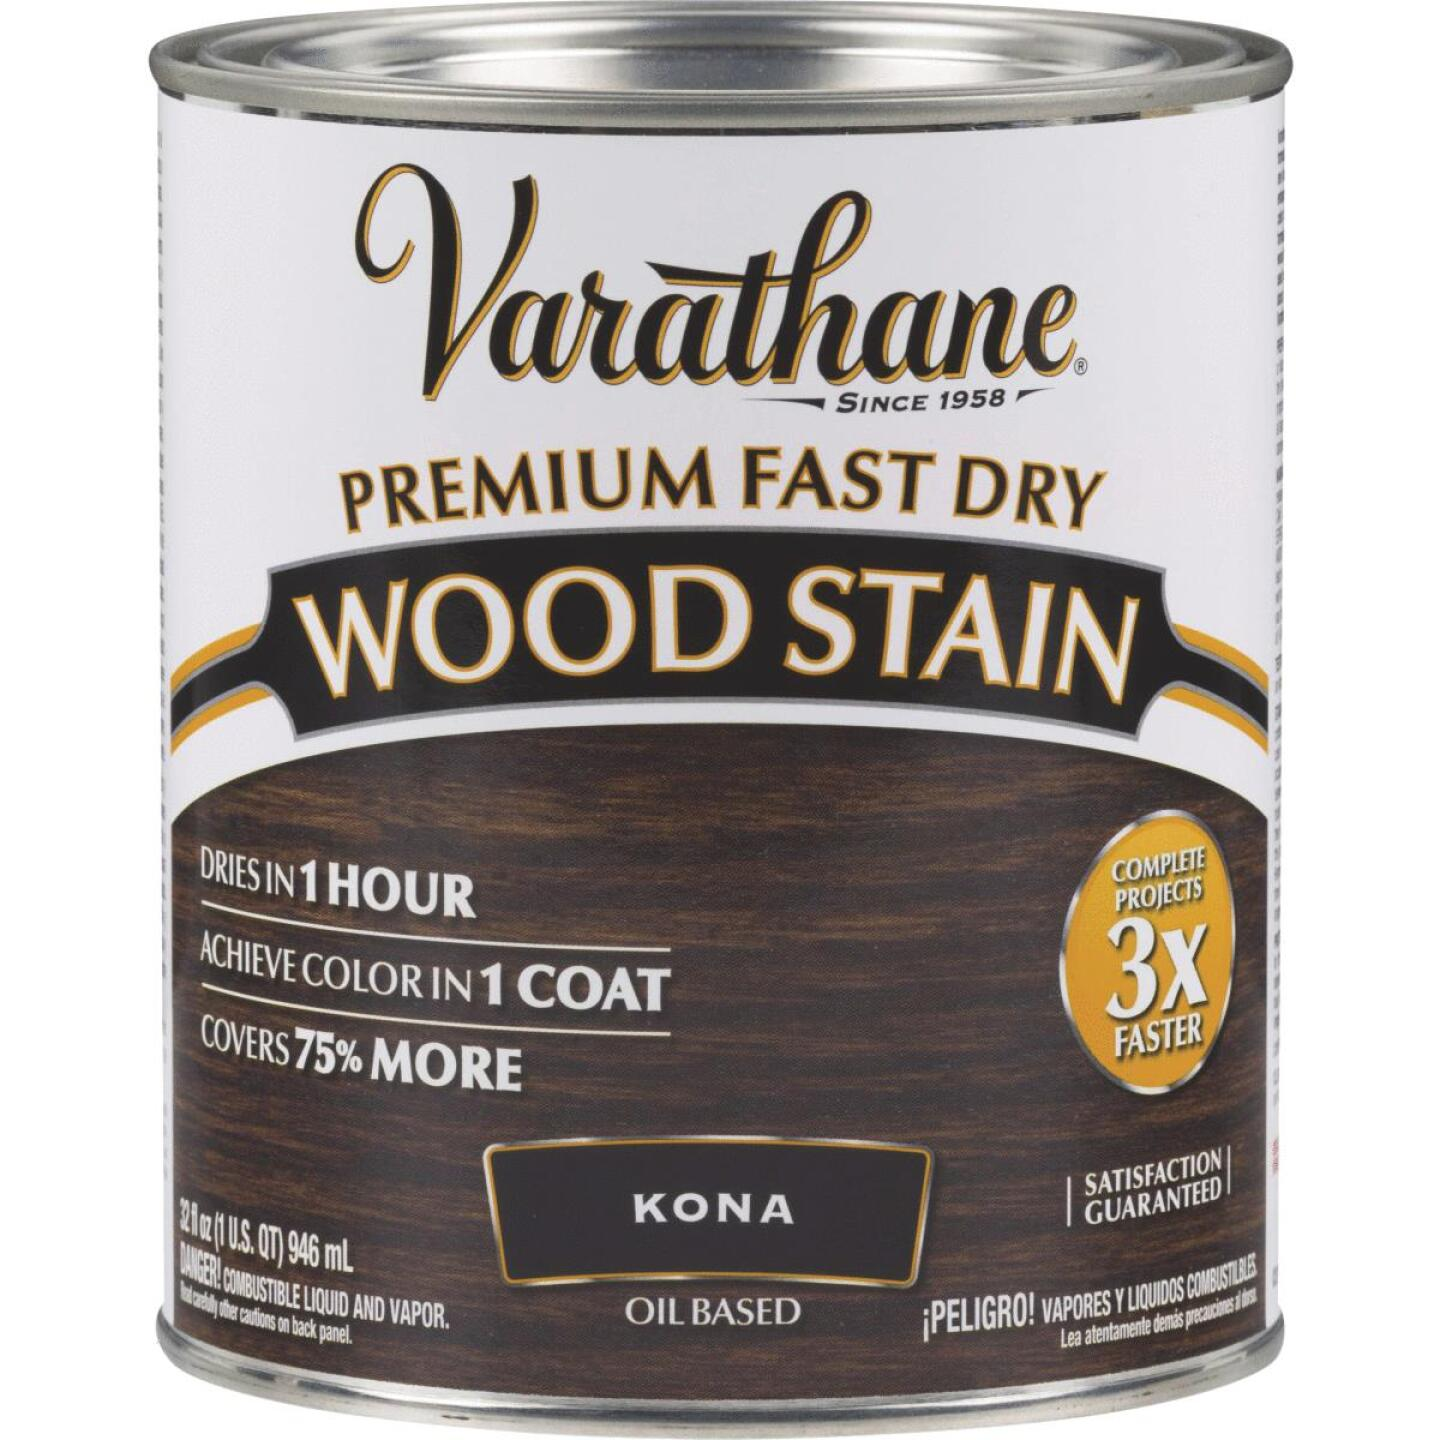 Varathane Fast Dry Kona Wood Urethane Modified Alkyd Interior Wood Stain, 1 Qt. Image 1